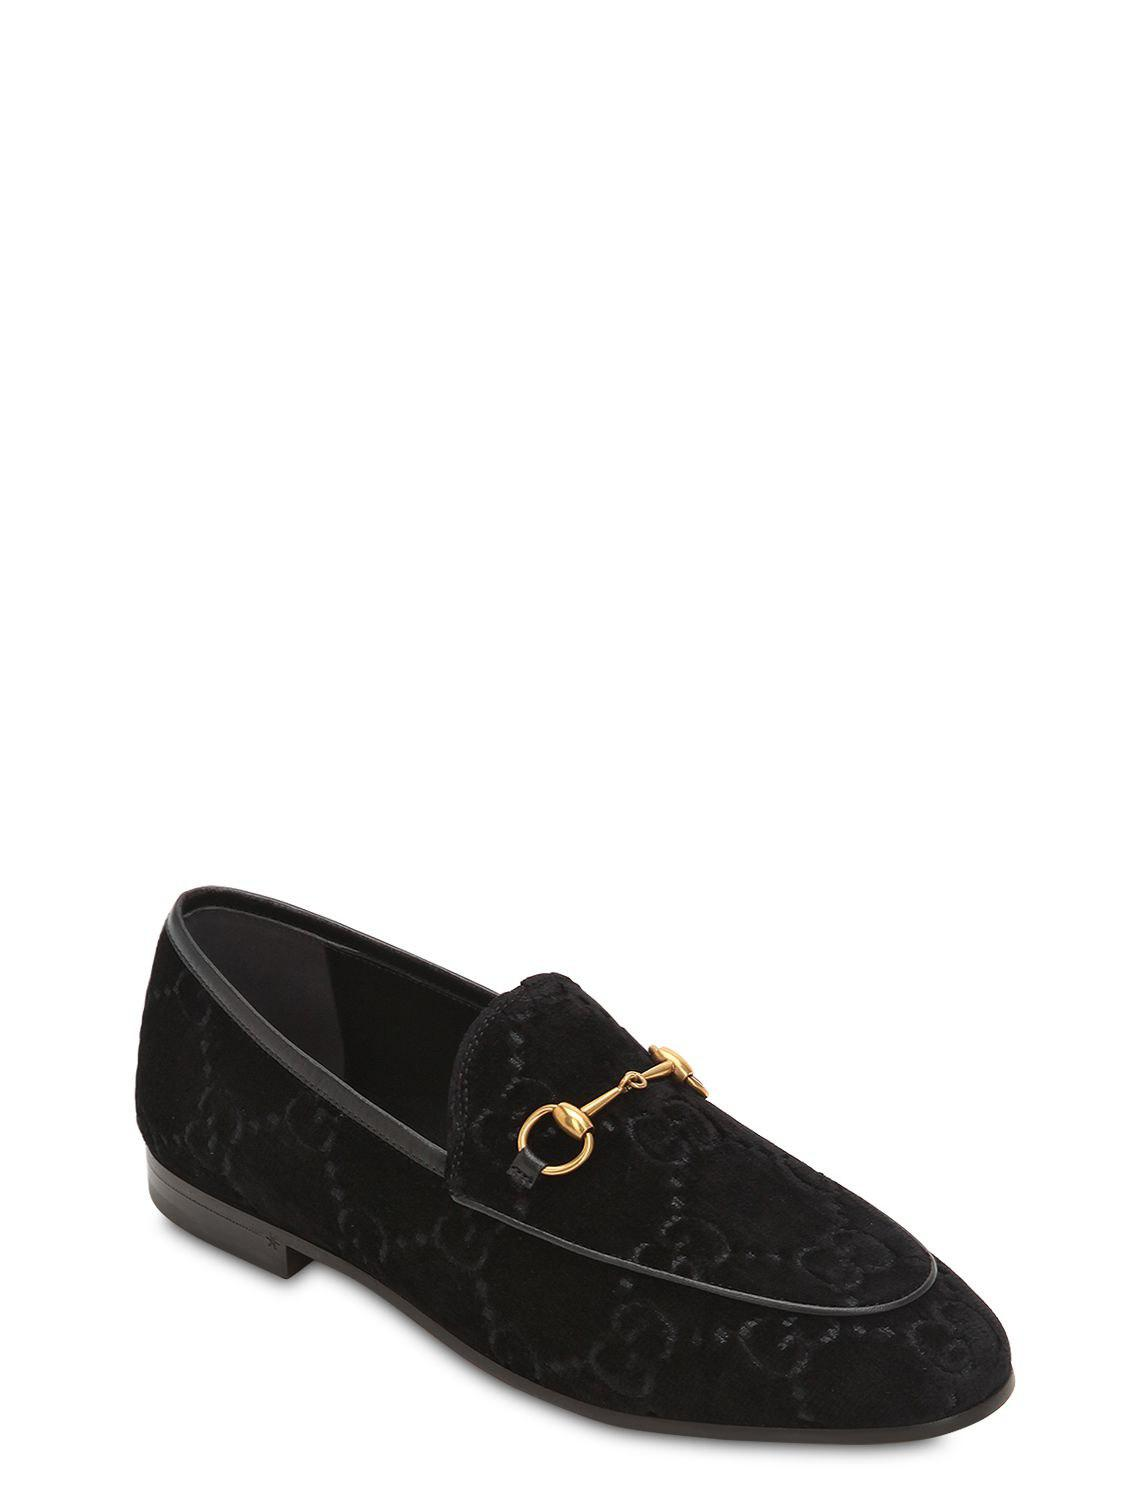 ccab855df Gucci 10mm Jordan Gg Supreme Velvet Loafers in Black - Lyst